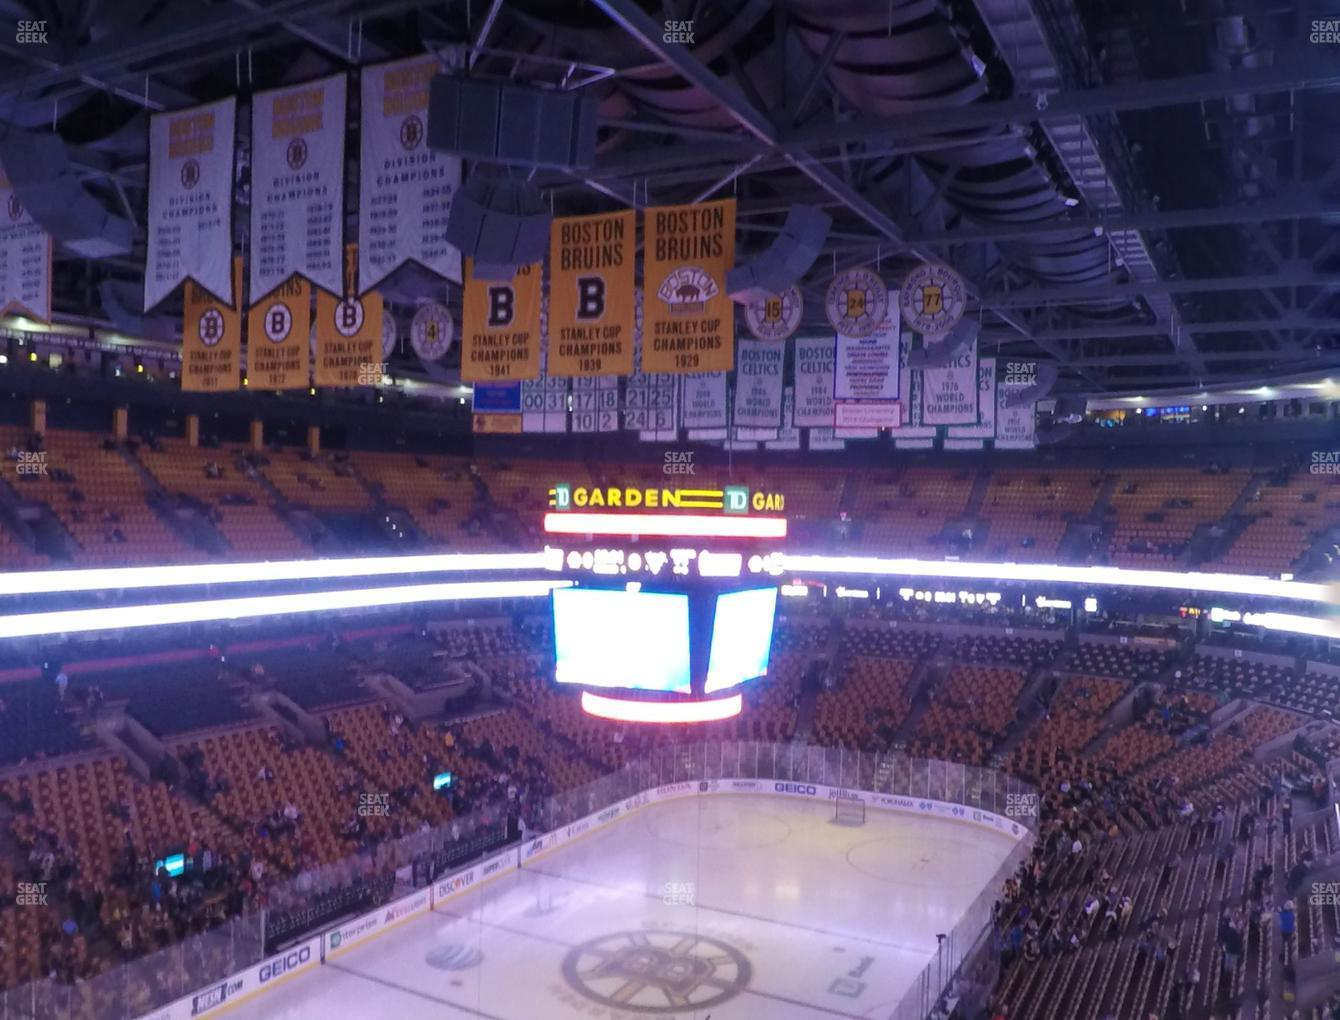 Boston Bruins at TD Garden Balcony 321 View